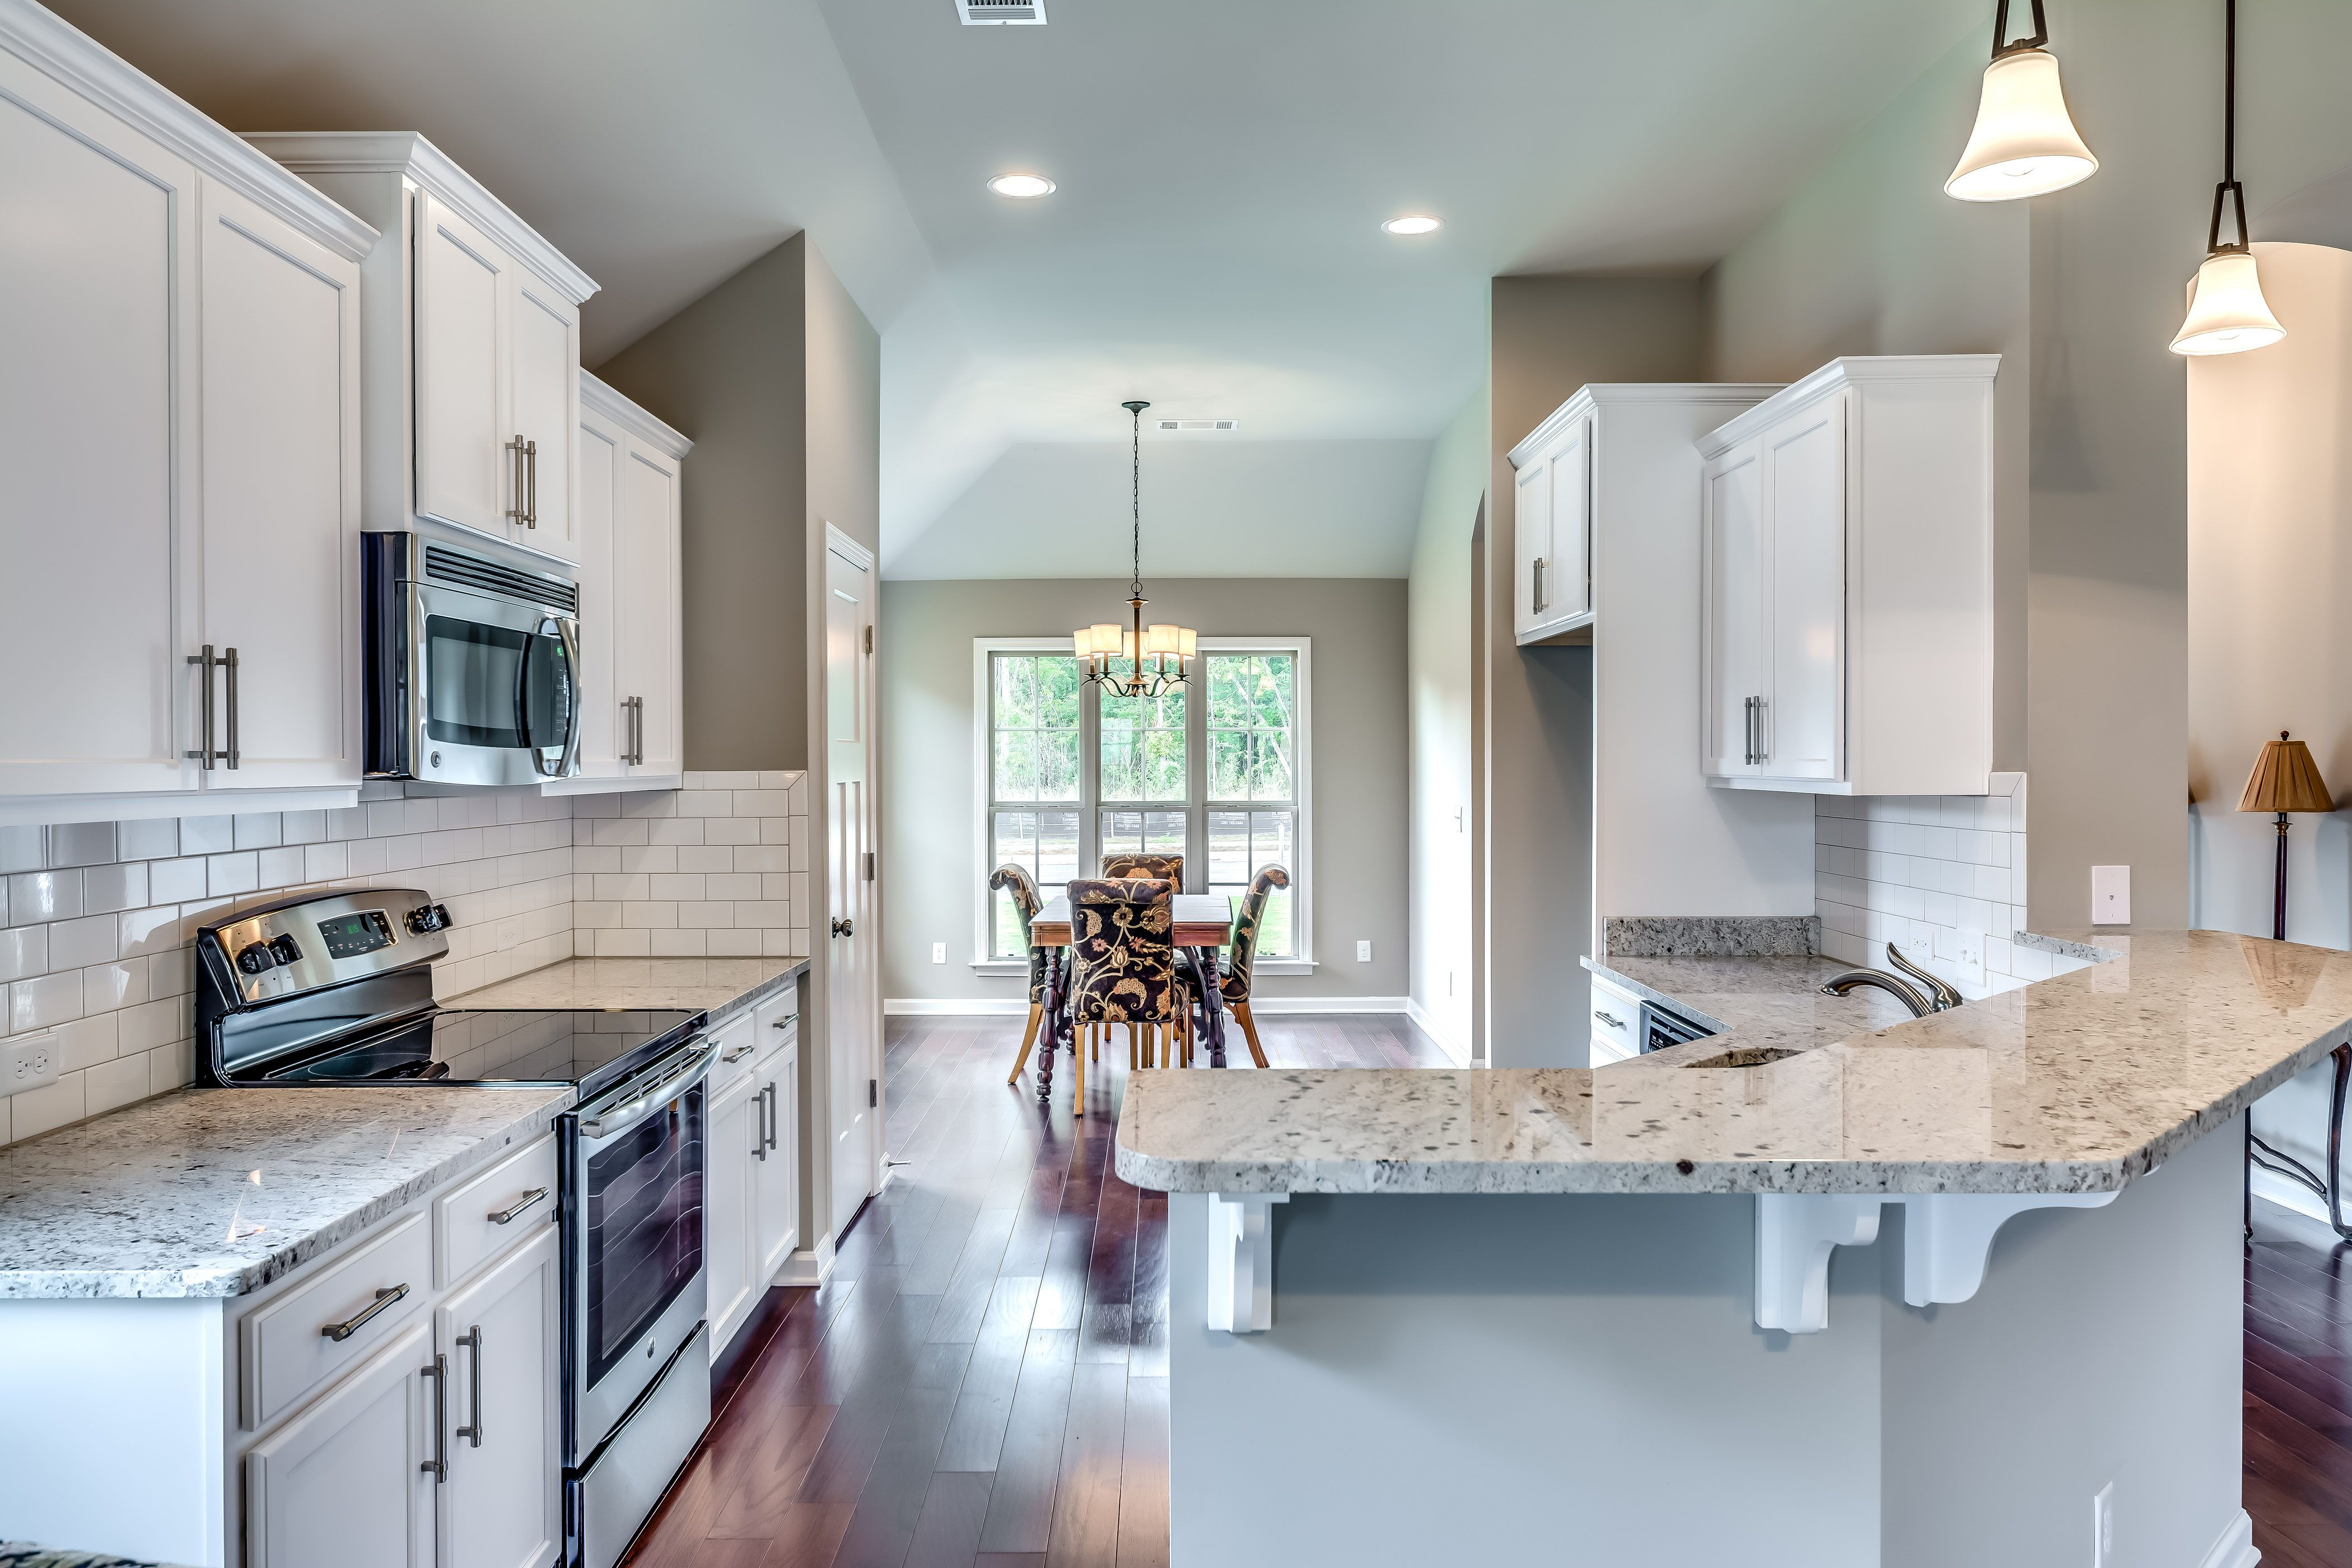 achieve dream this kitchen stainless picmonkey steel ve all wilmington residential been to with gs custom summer want their resident helping we hear about the metalworx s busy countertops collage